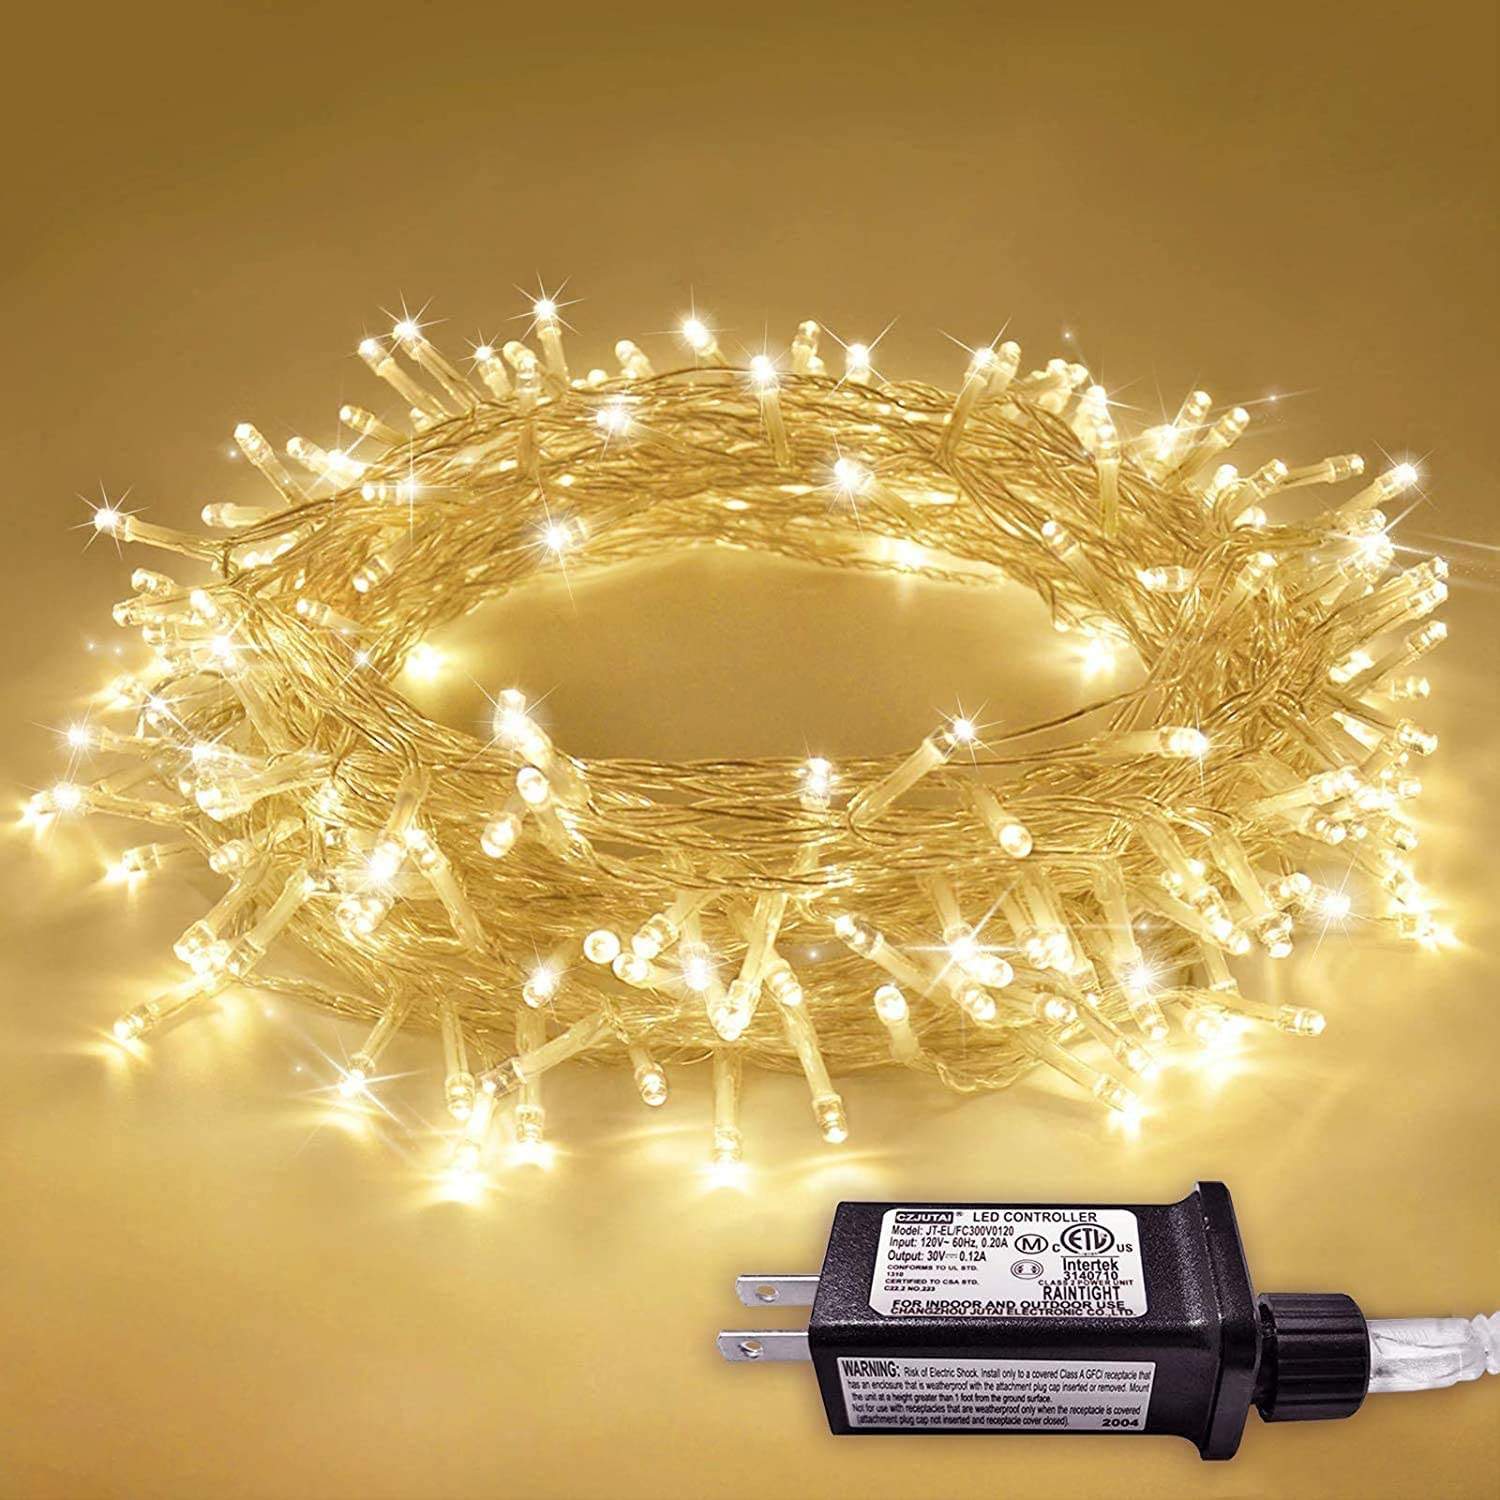 Rayolon LED Indoor String Lights, USB Powered Copper Wire Starry Fairy Lights, 200 LEDs, 8 Modes, Remote Control, 65.6ft, for Bedroom, Christmas, Parties, Wedding, Decoration (Yellow)